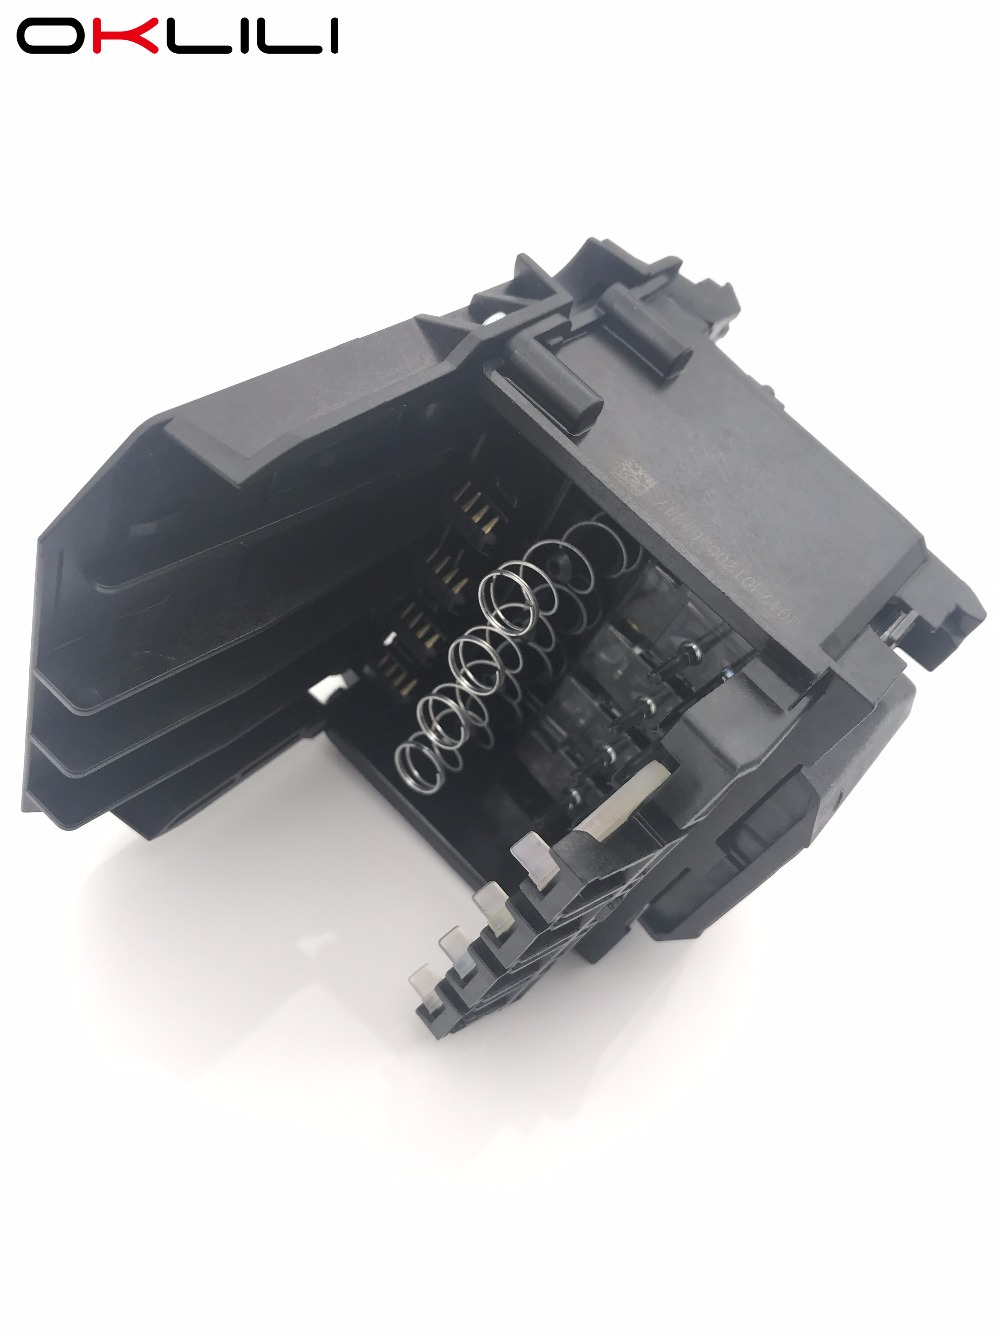 CB863-80013A CB863-80002A 932 933 932XL 933XL Printhead Printer Print head for HP 6060e 6100 6100e 6600 6700 7110 7600 7610 7612 print head for hp 932 933 932xl 933xl for 6060e 6100 6100e 6600 6700 7110 7600